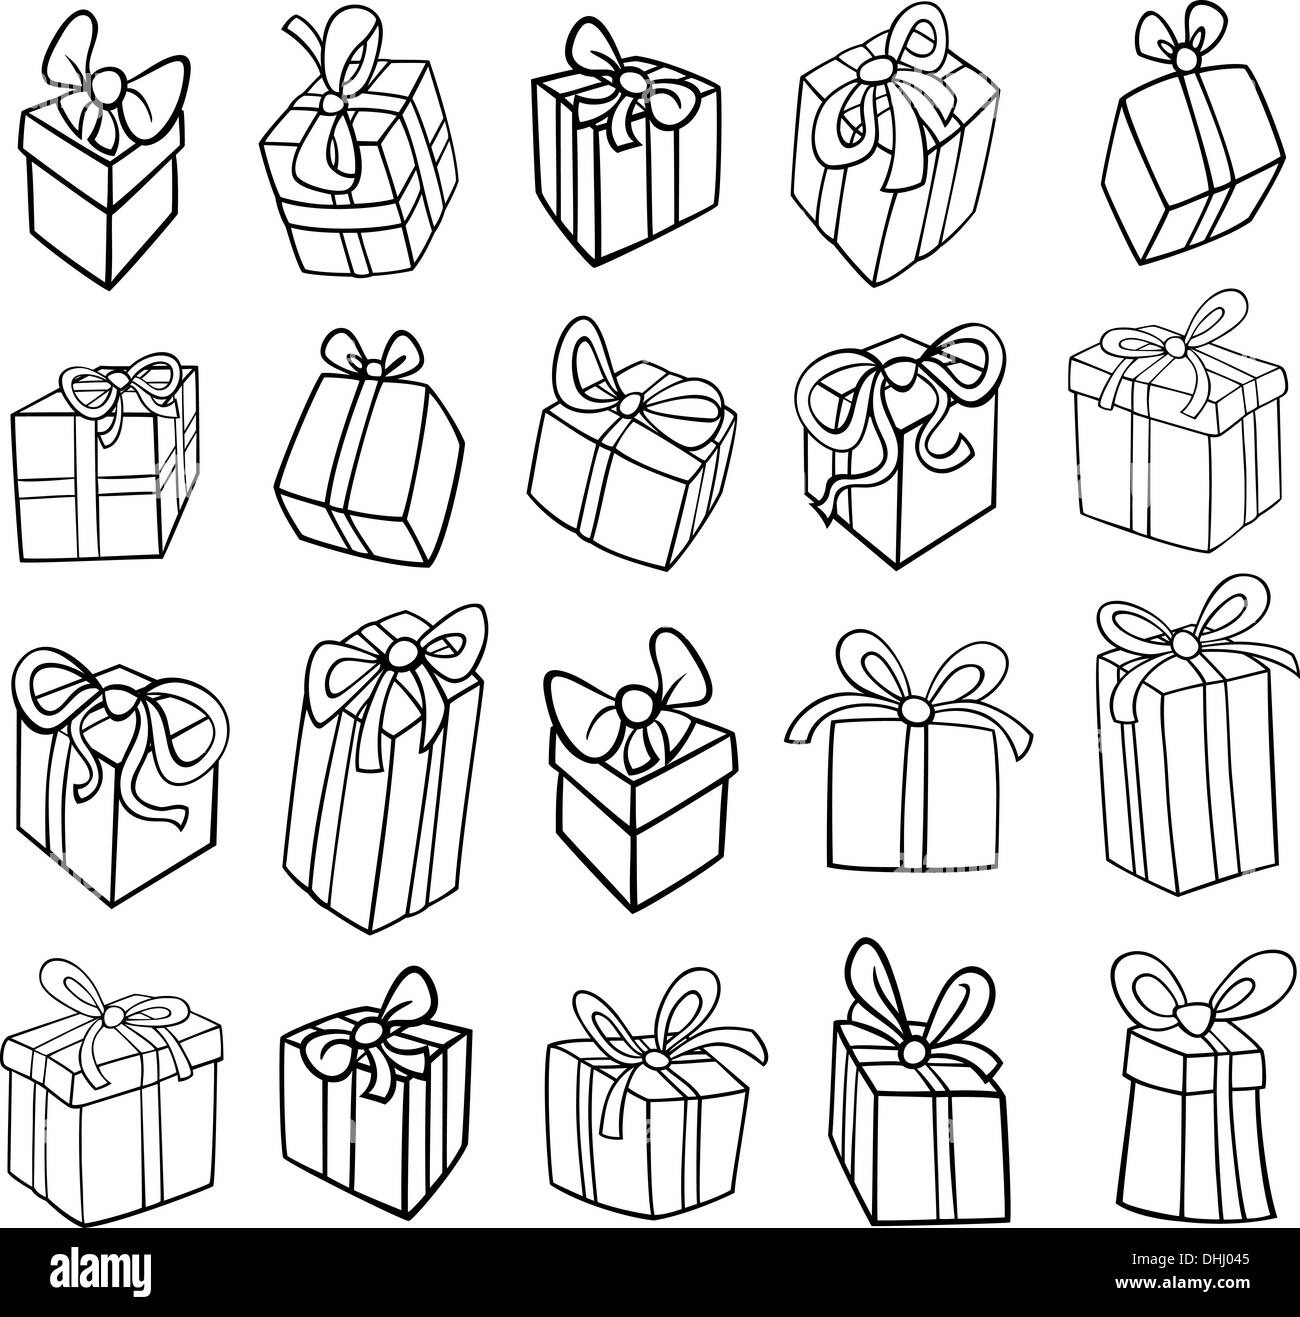 Black And White Cartoon Illustration Of Christmas Or